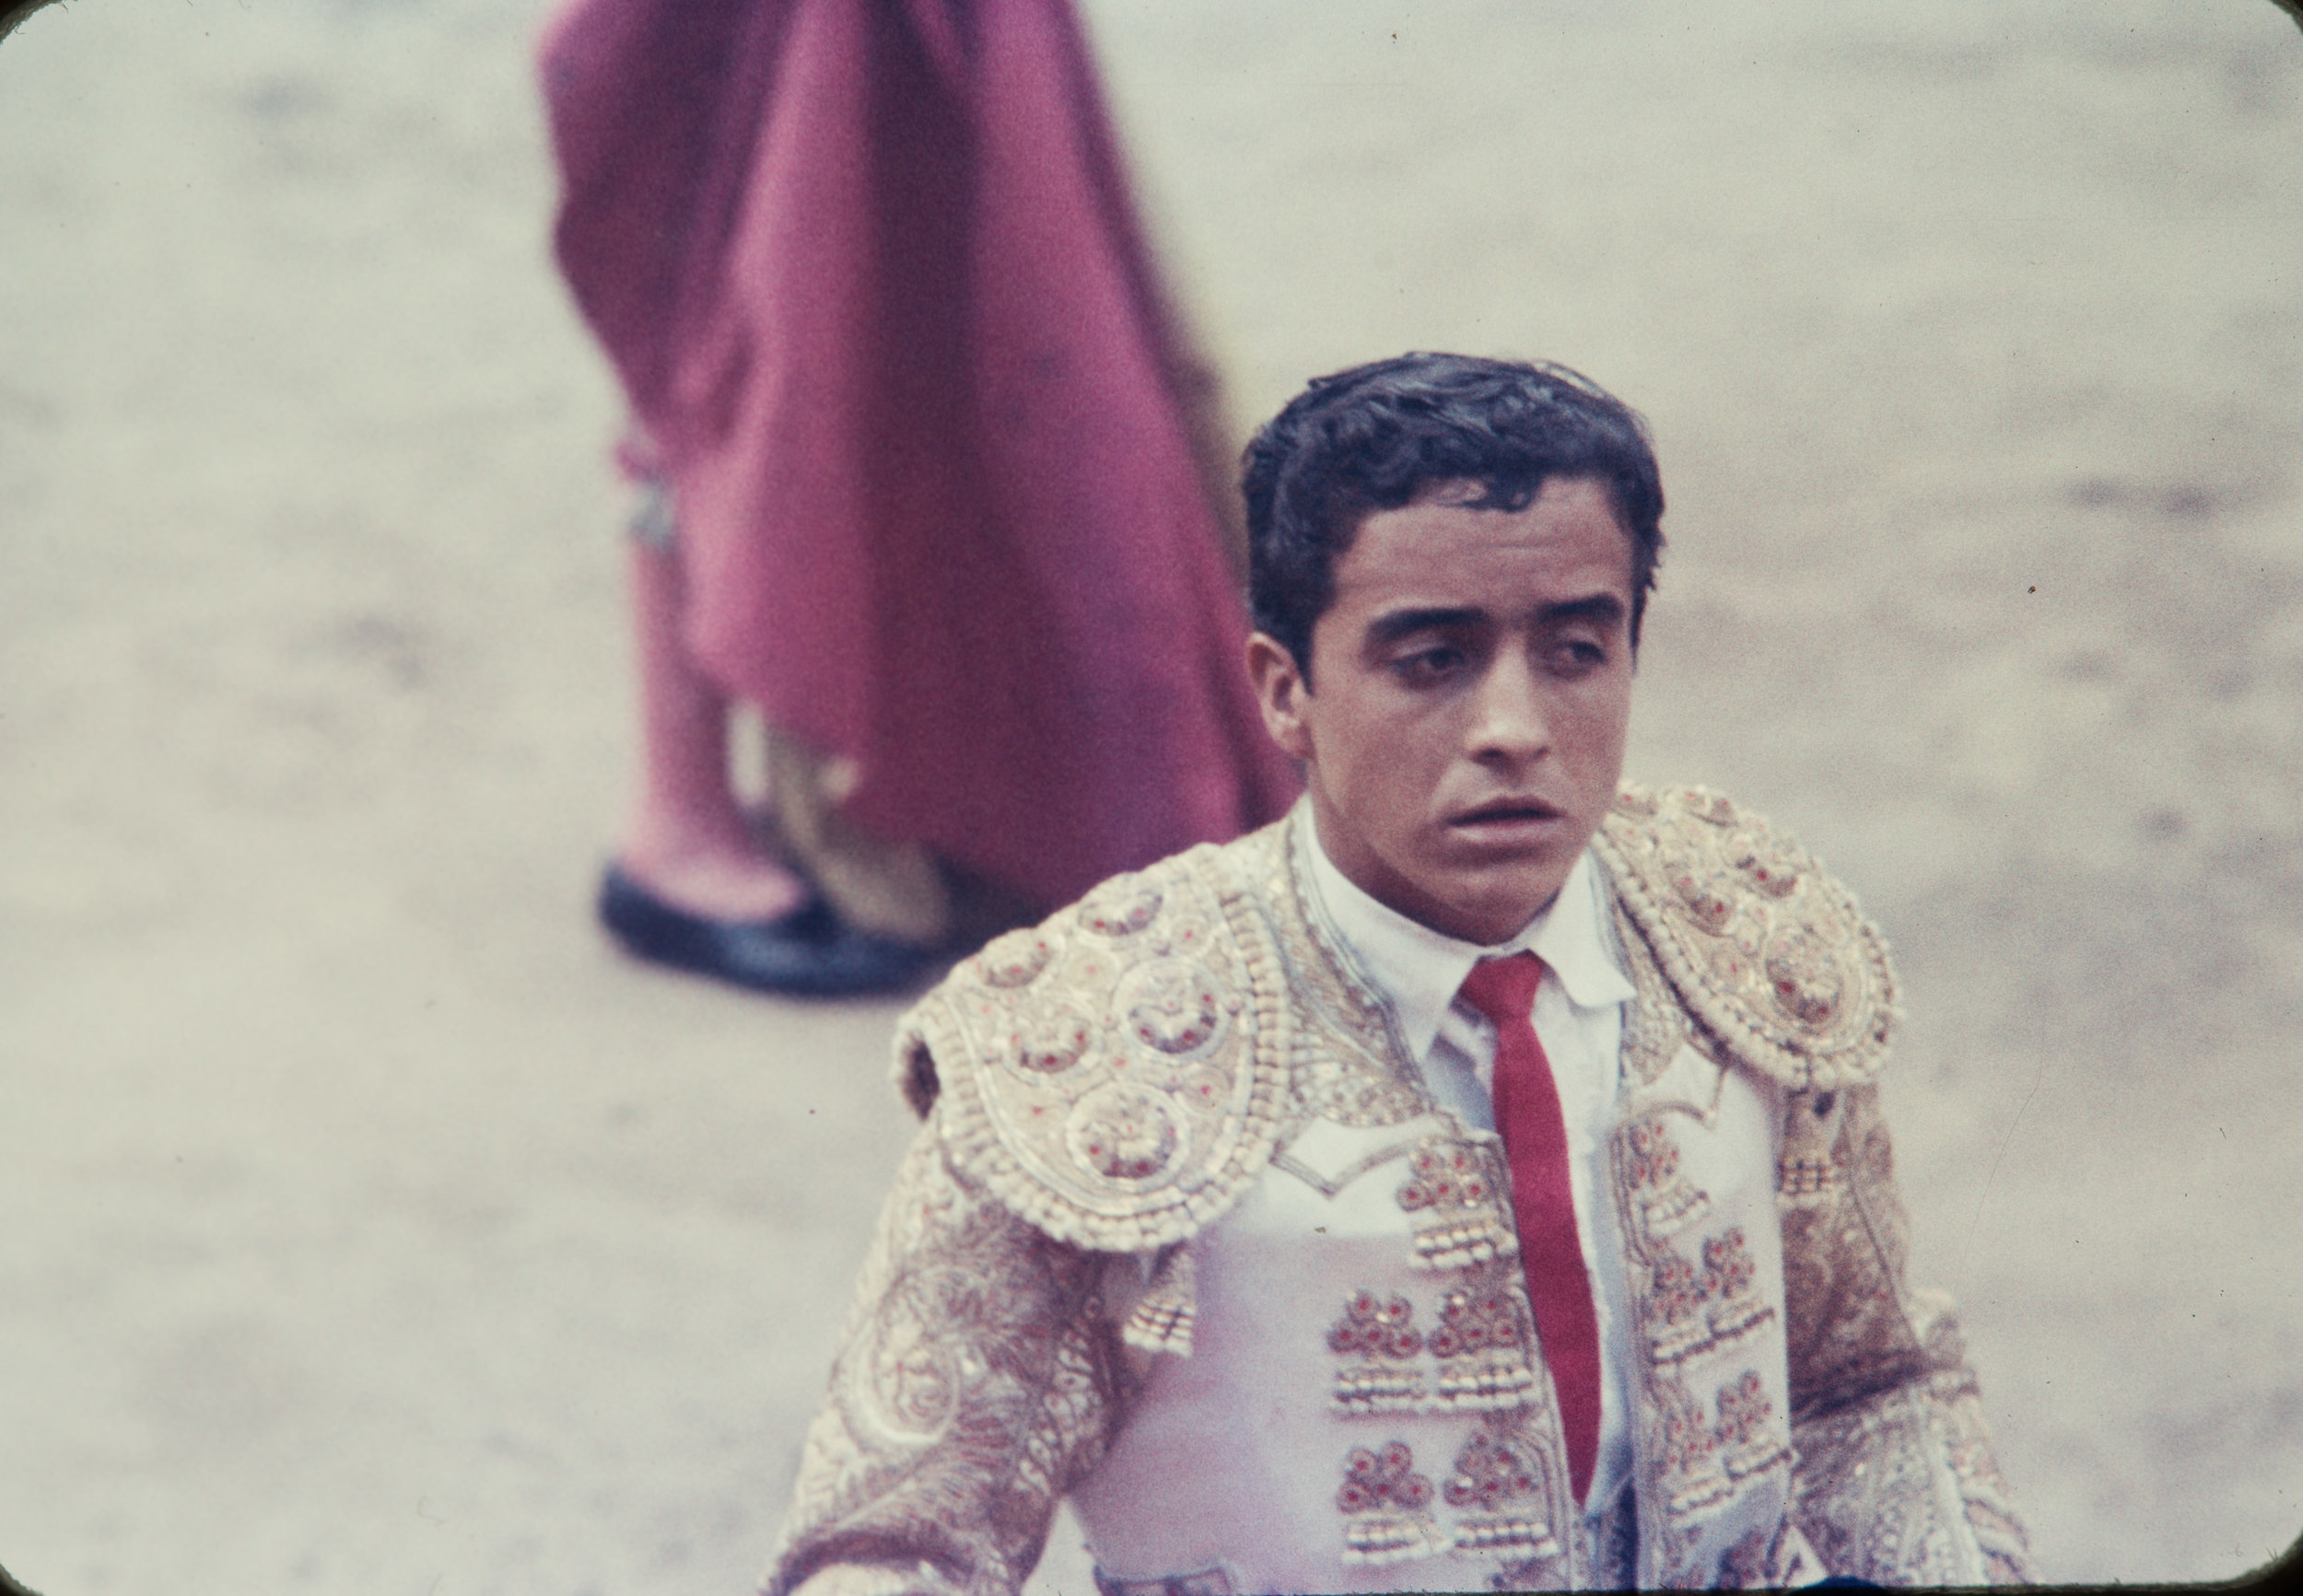 Matador job done, Mexico, 1957